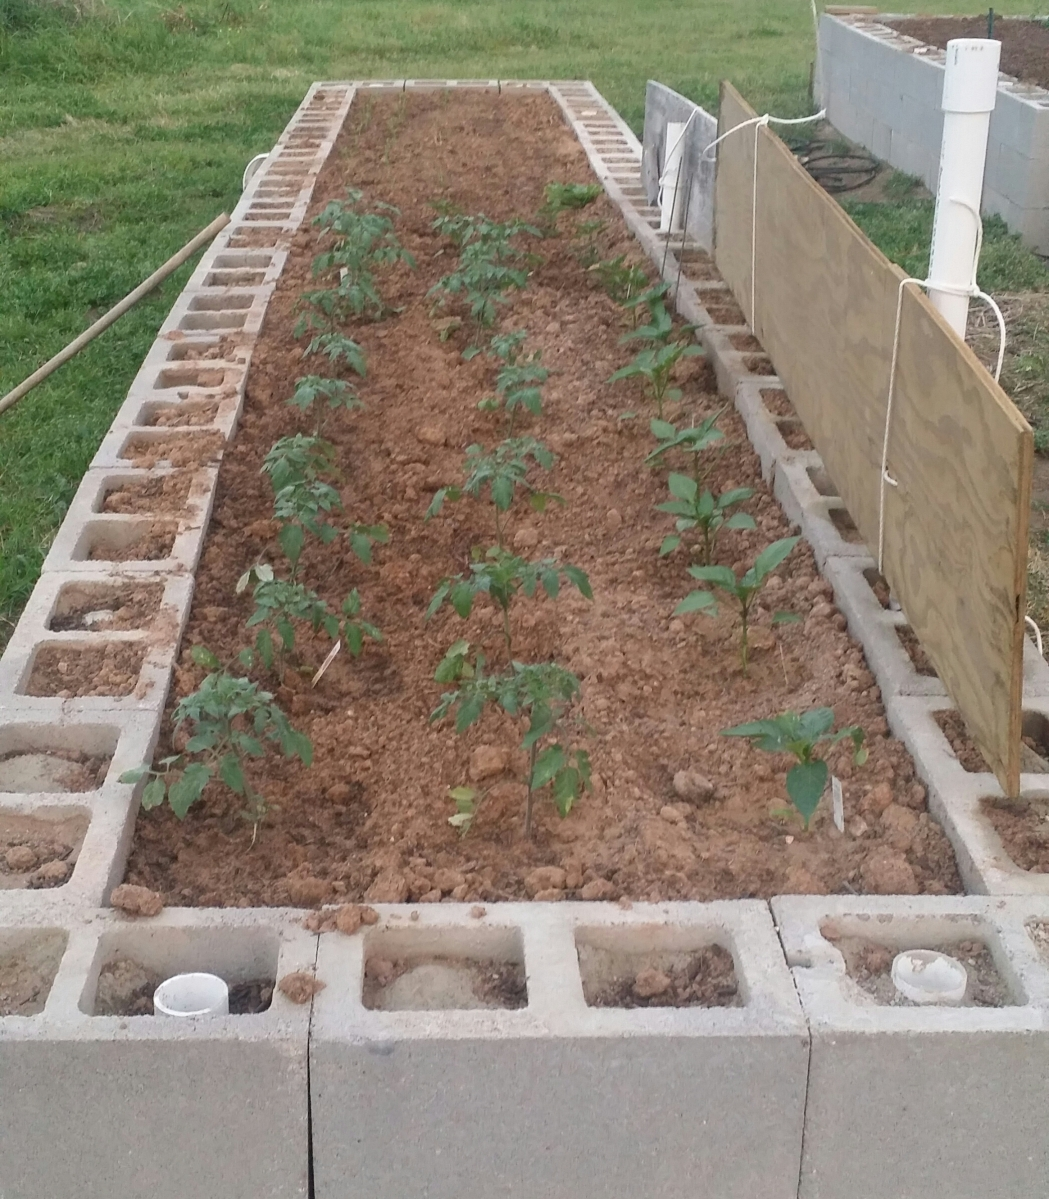 Raised bed with 6 inch tomato and pepper plants added.